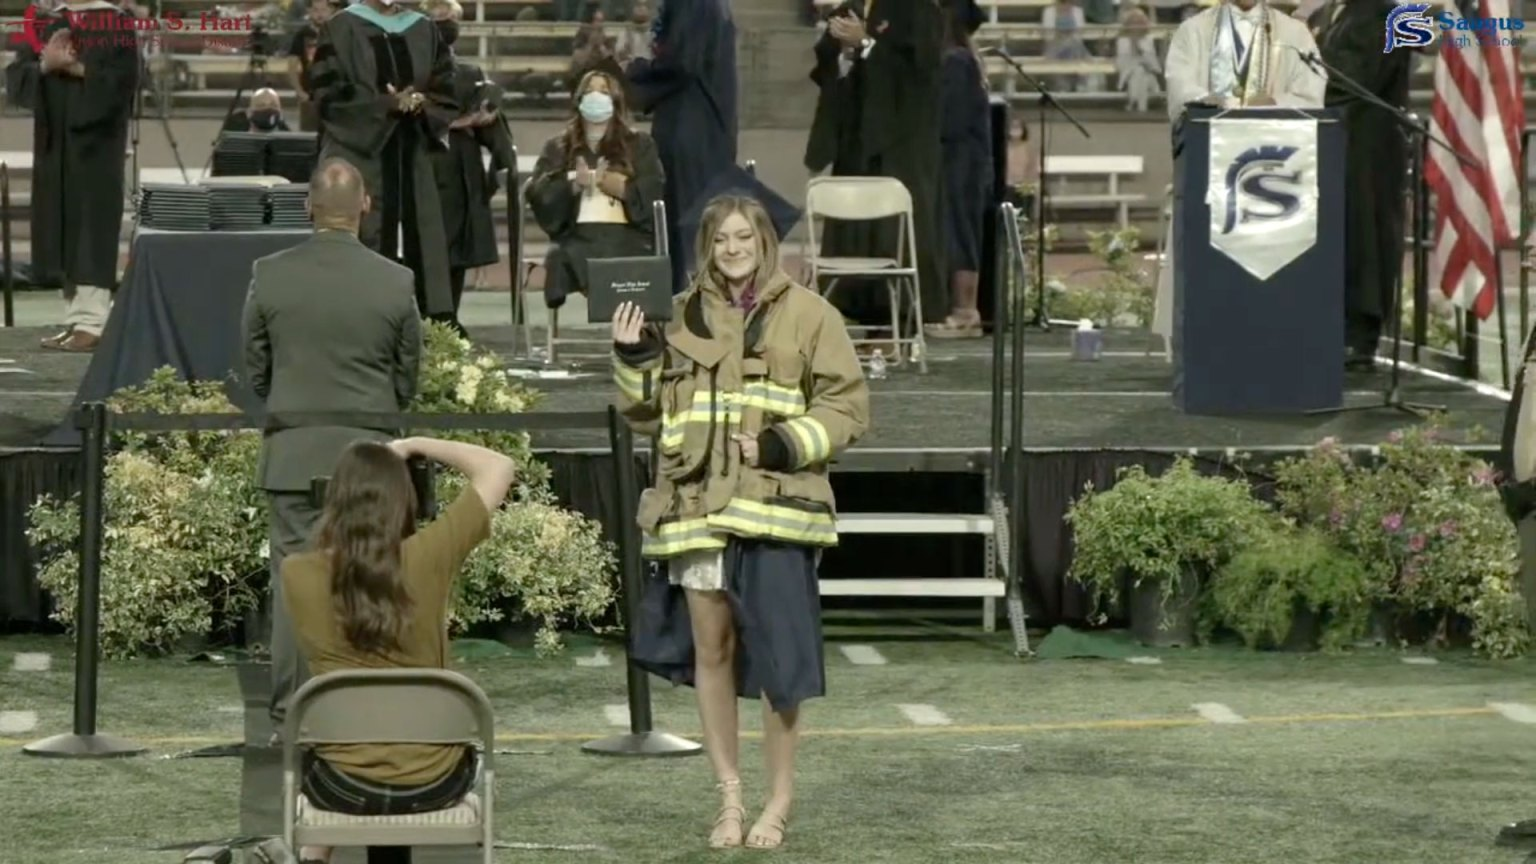 Daughter of late Agua Dulce firefighter wore fathers firefighter jacket during graduation